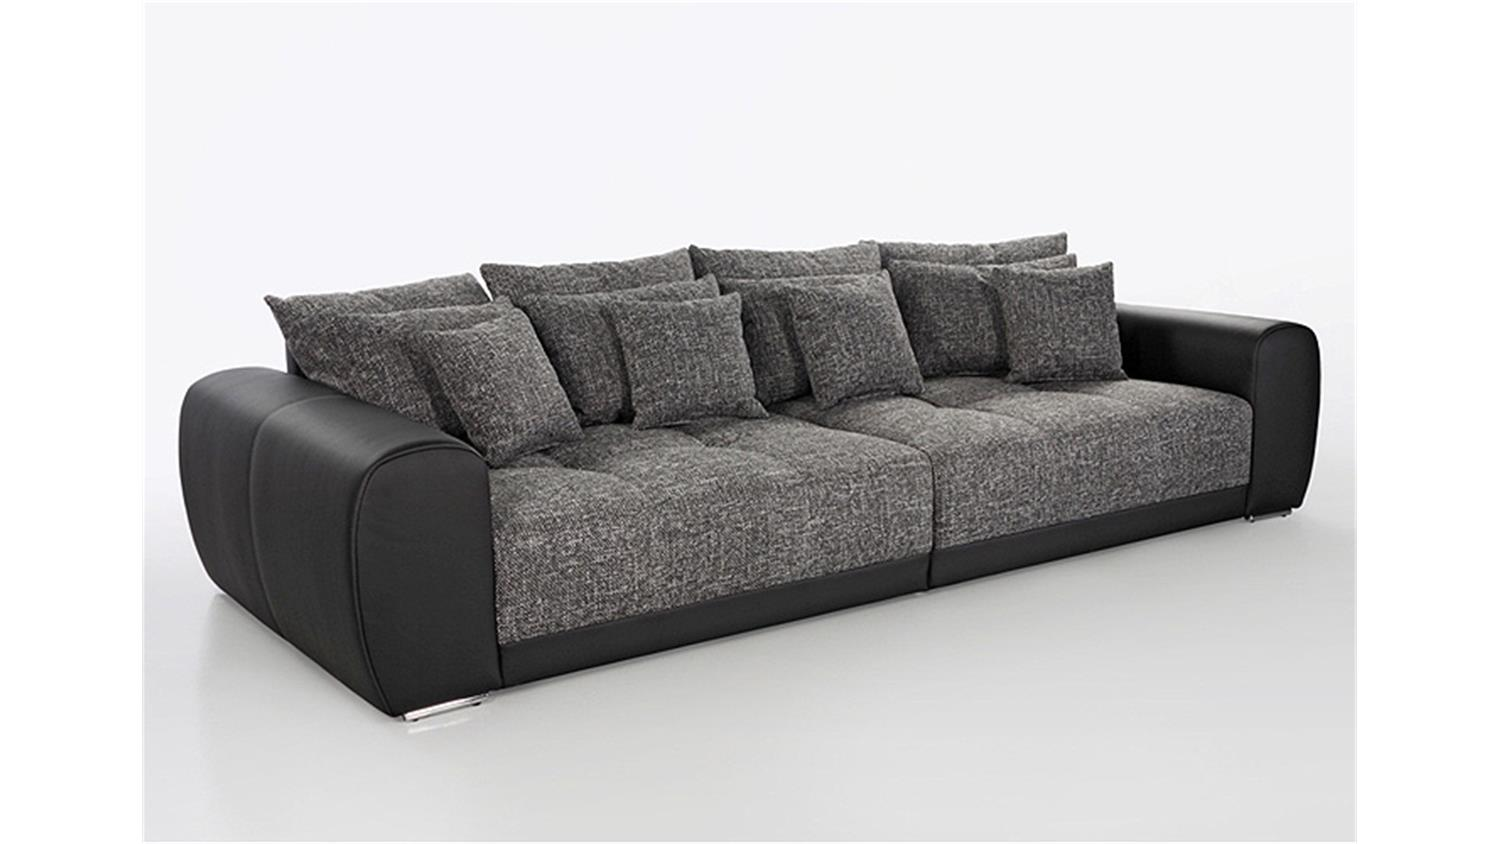 xxl sofa leder images page 695 homeandgarden homeandgarden page 636 big sofa xxl leder xxl. Black Bedroom Furniture Sets. Home Design Ideas